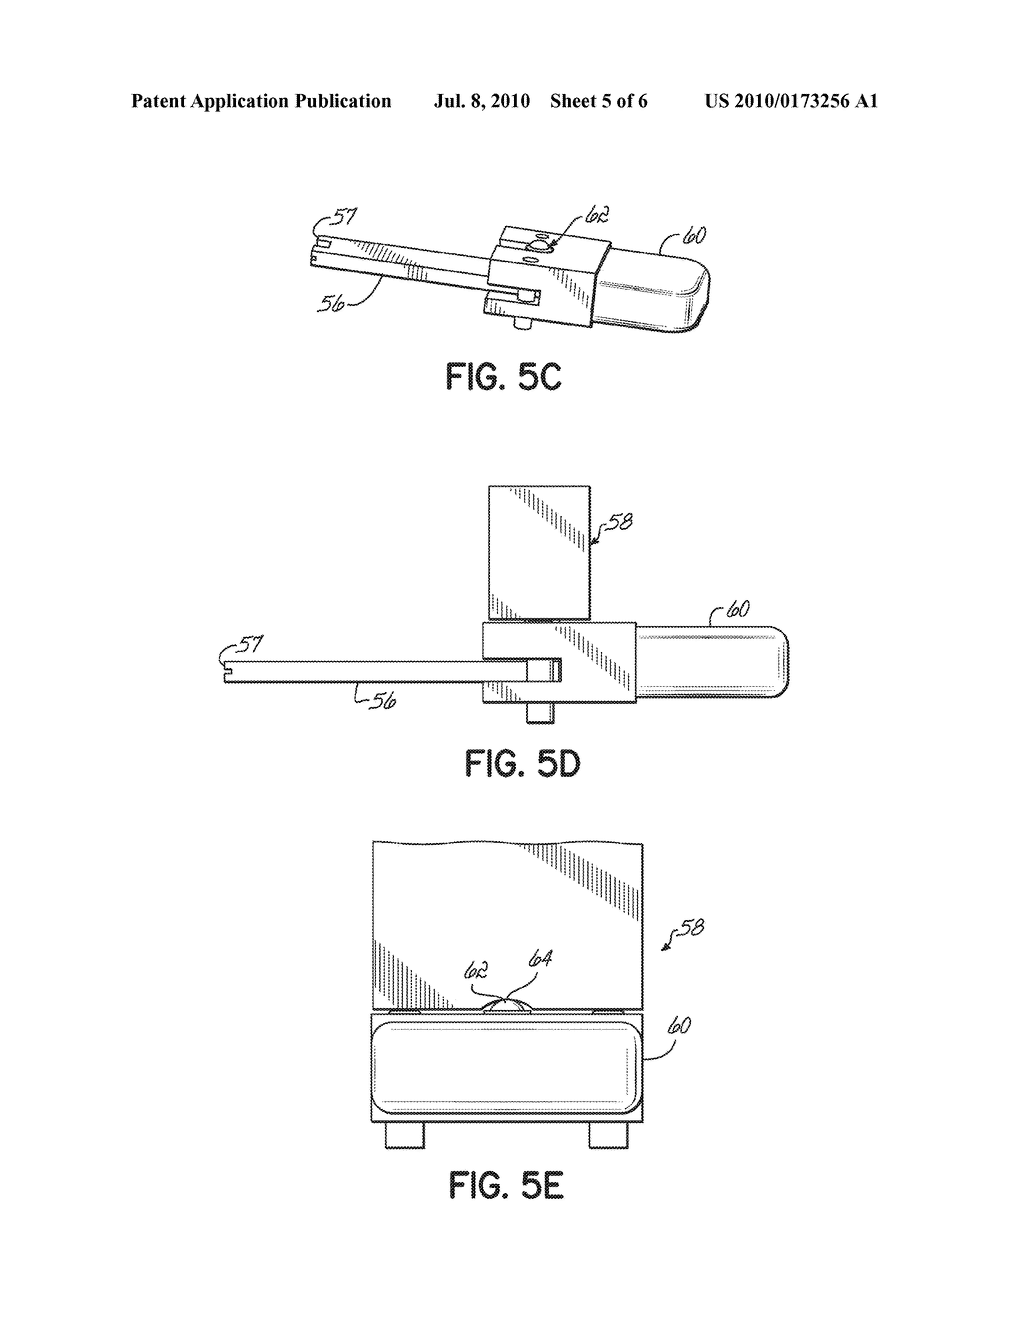 Surface Treated Polycrystalline Ceramic Orthodontic Bracket and Method of Making Same - diagram, schematic, and image 06